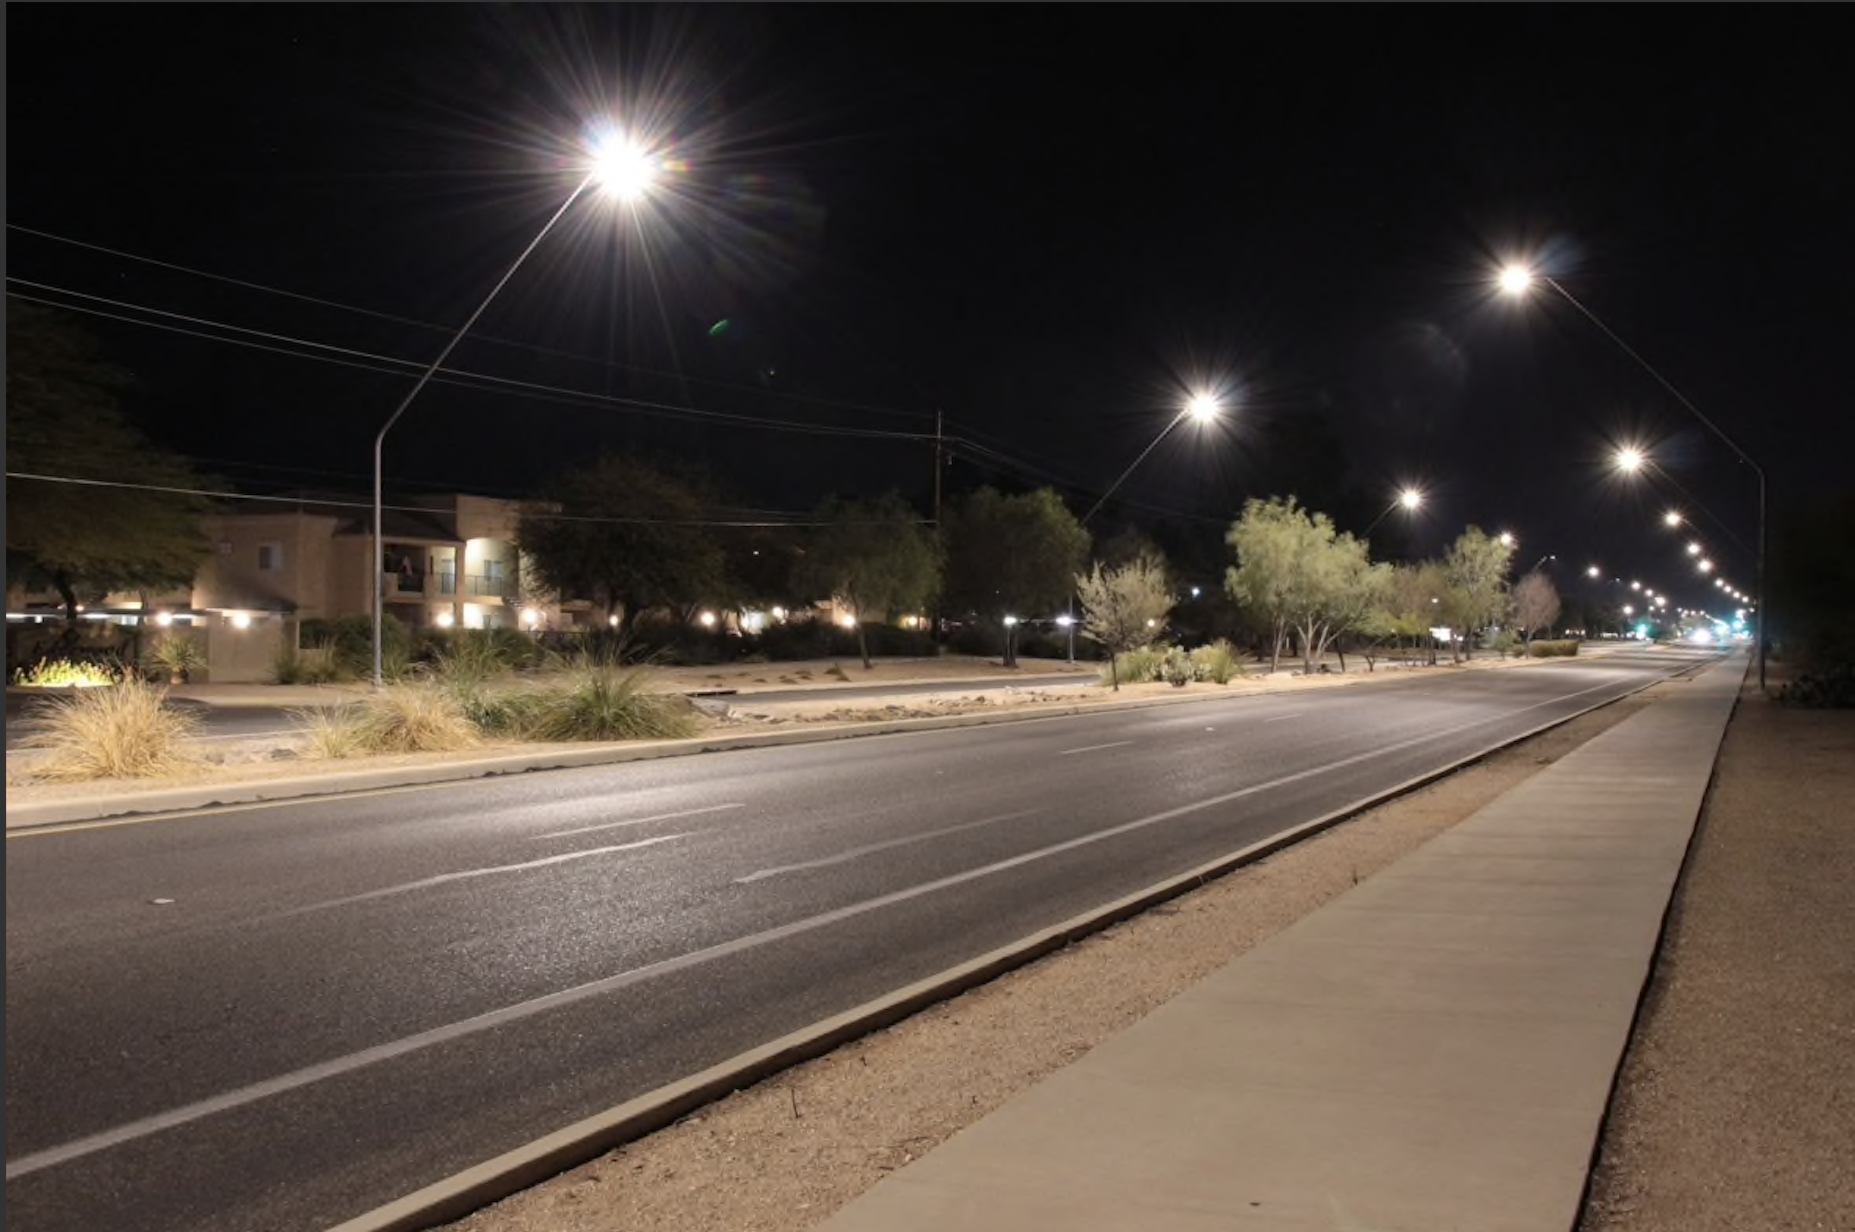 Reducing light pollution has numerous benefits for the environment